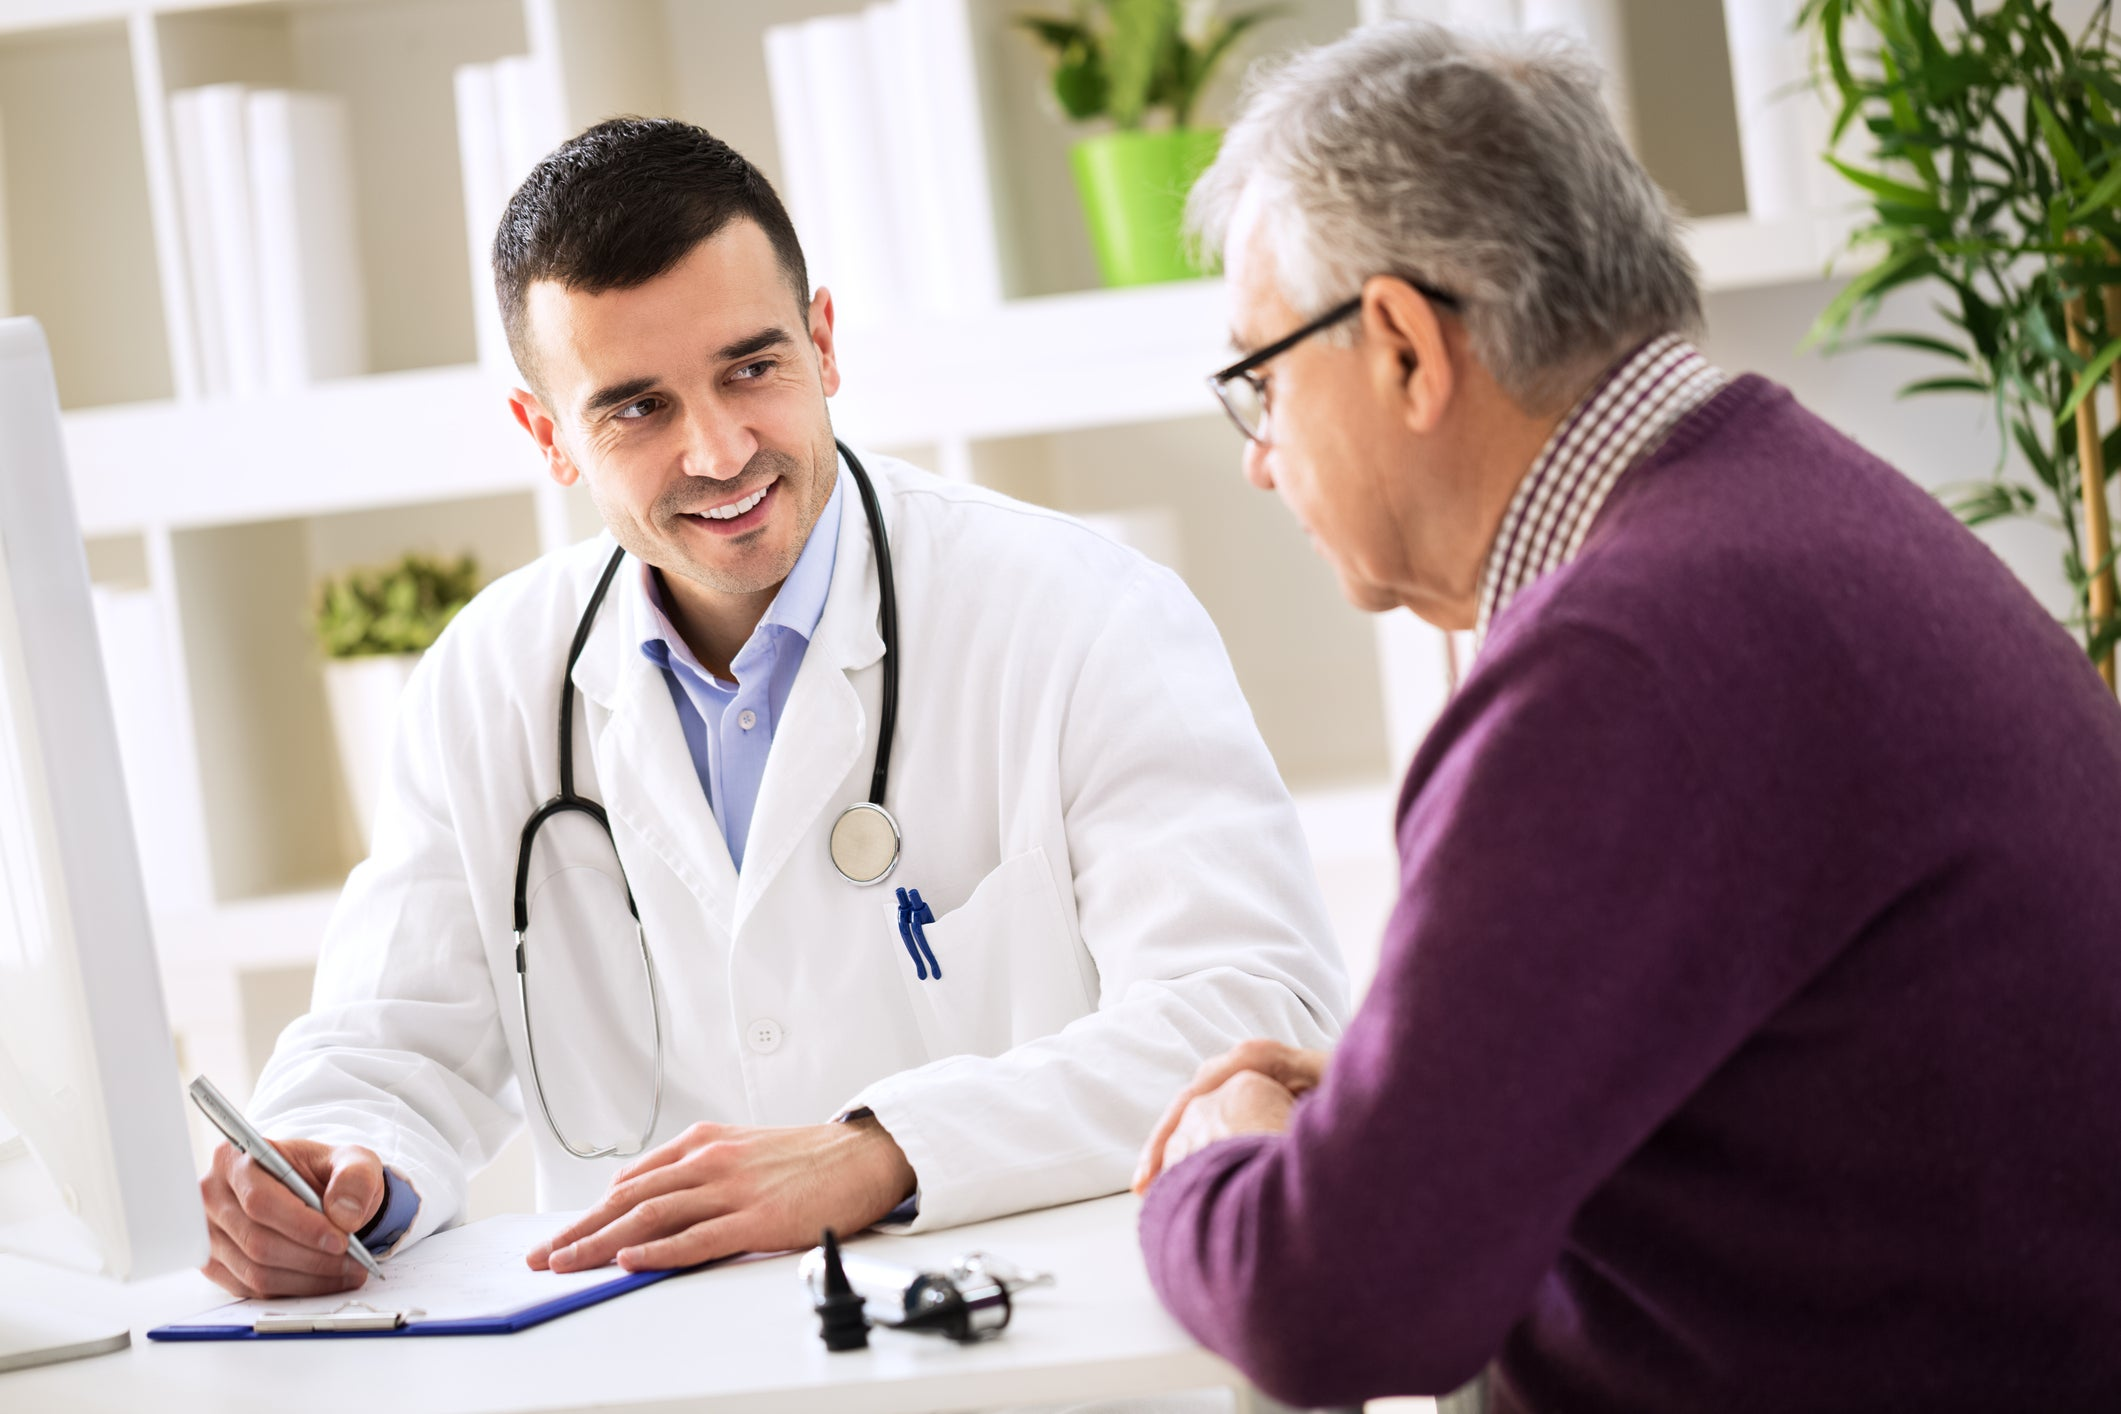 How Much Could Healthcare Cost You in Retirement? The Amount Will Shock You | The Motley Fool